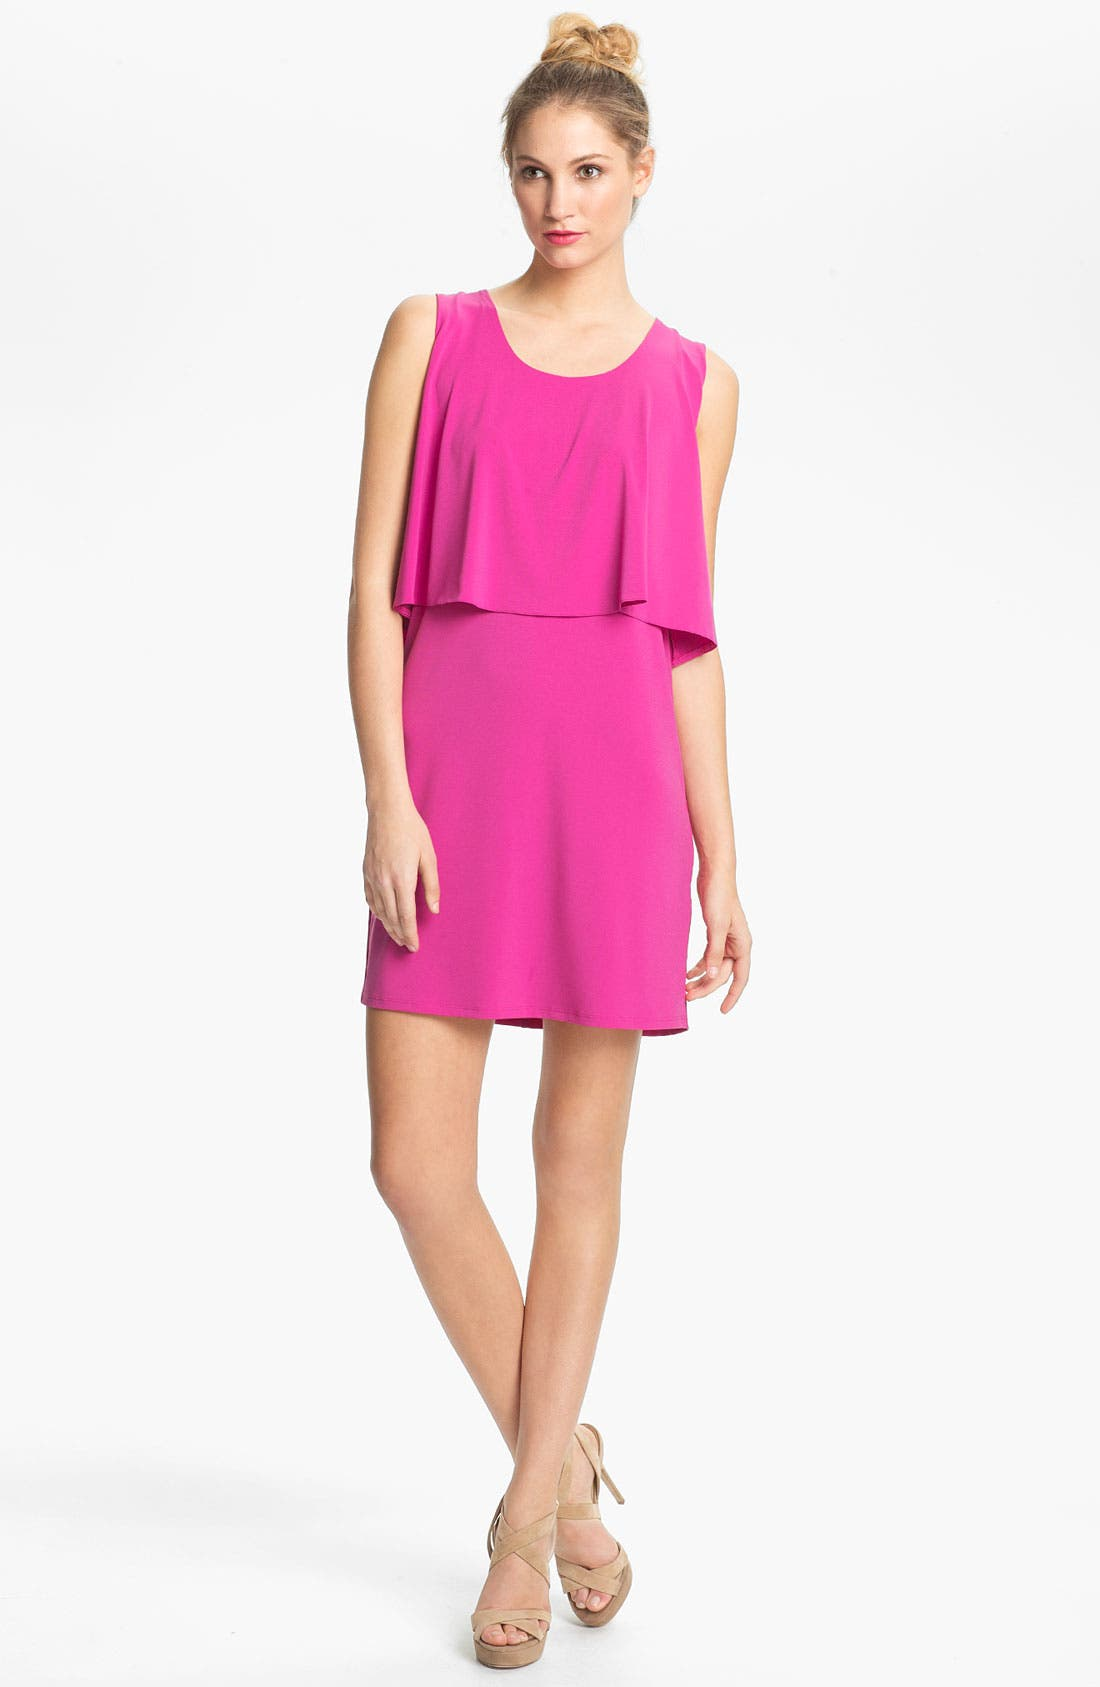 Alternate Image 1 Selected - Felicity & Coco Sleeveless Jersey Dress (Nordstrom Exclusive)